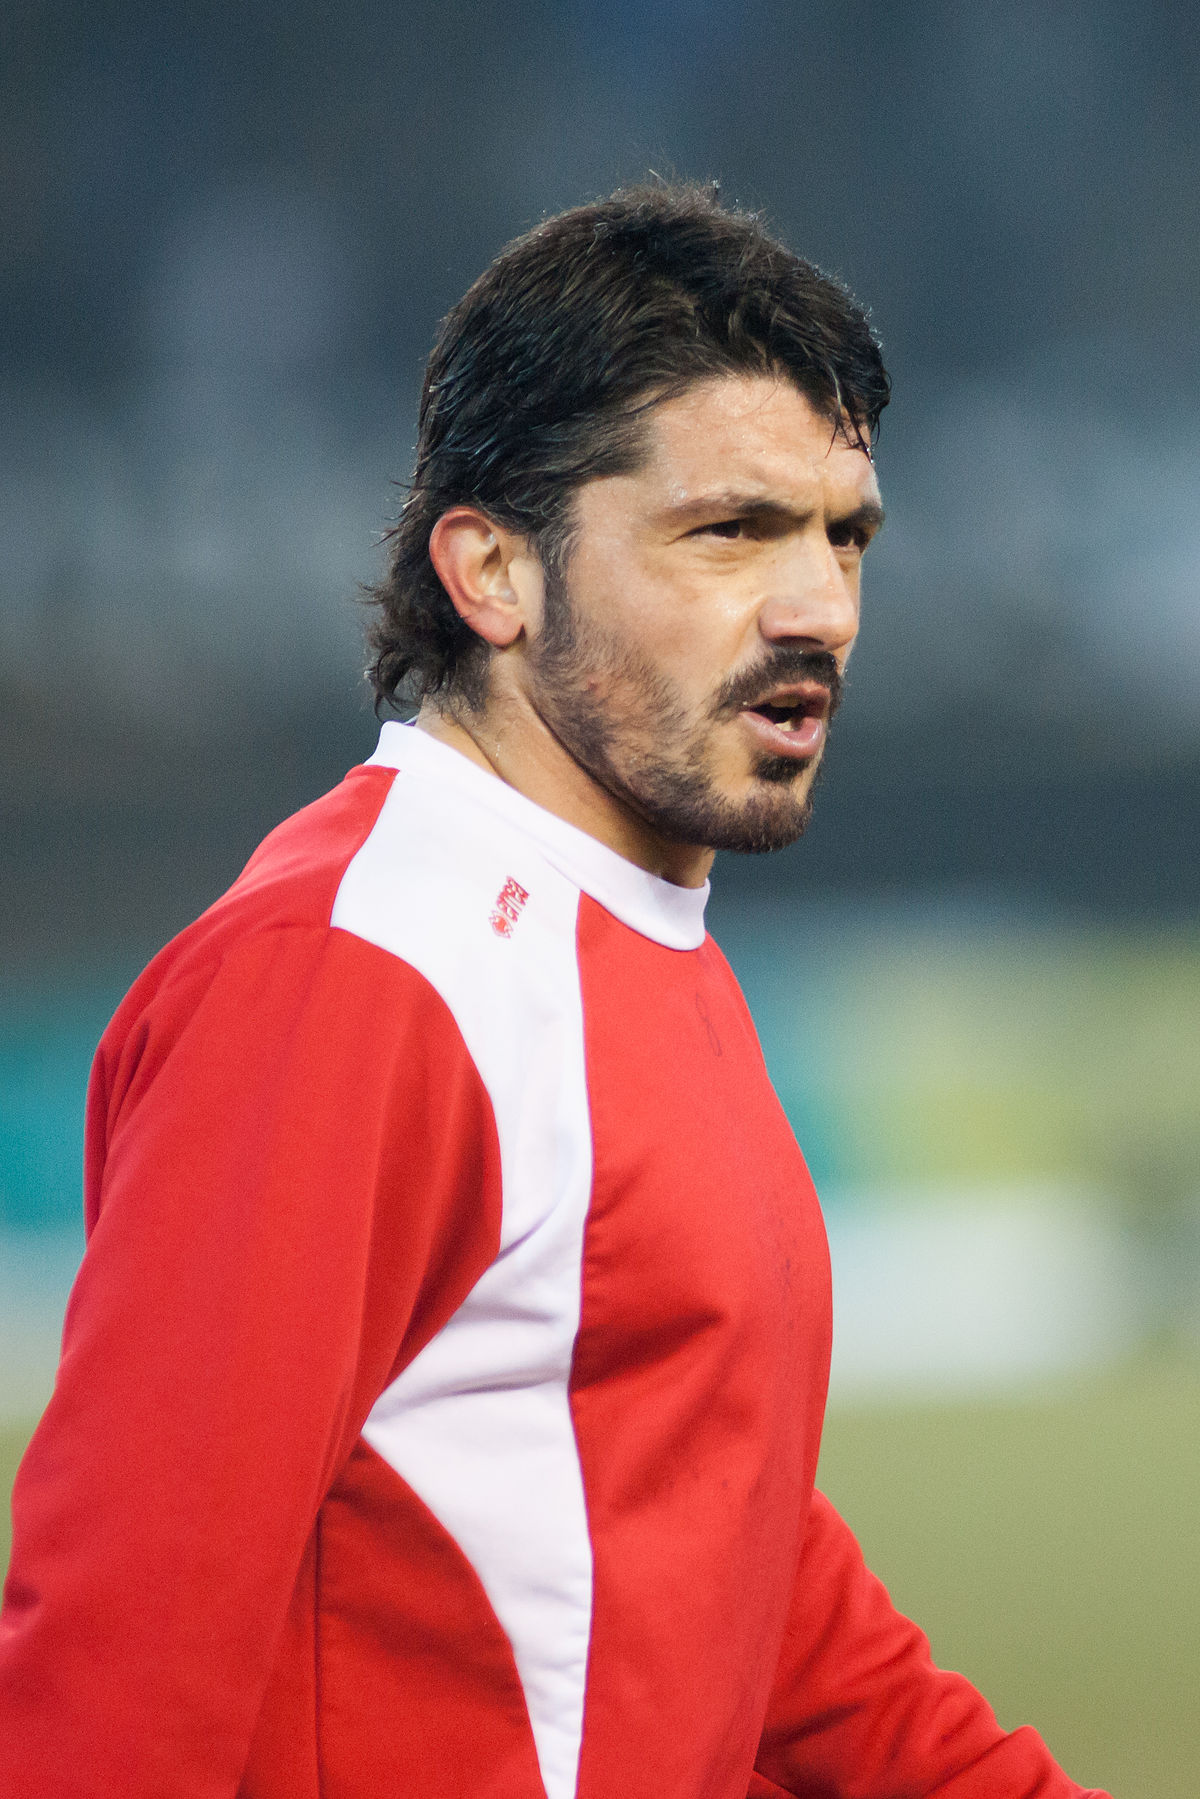 gattuso - photo #2